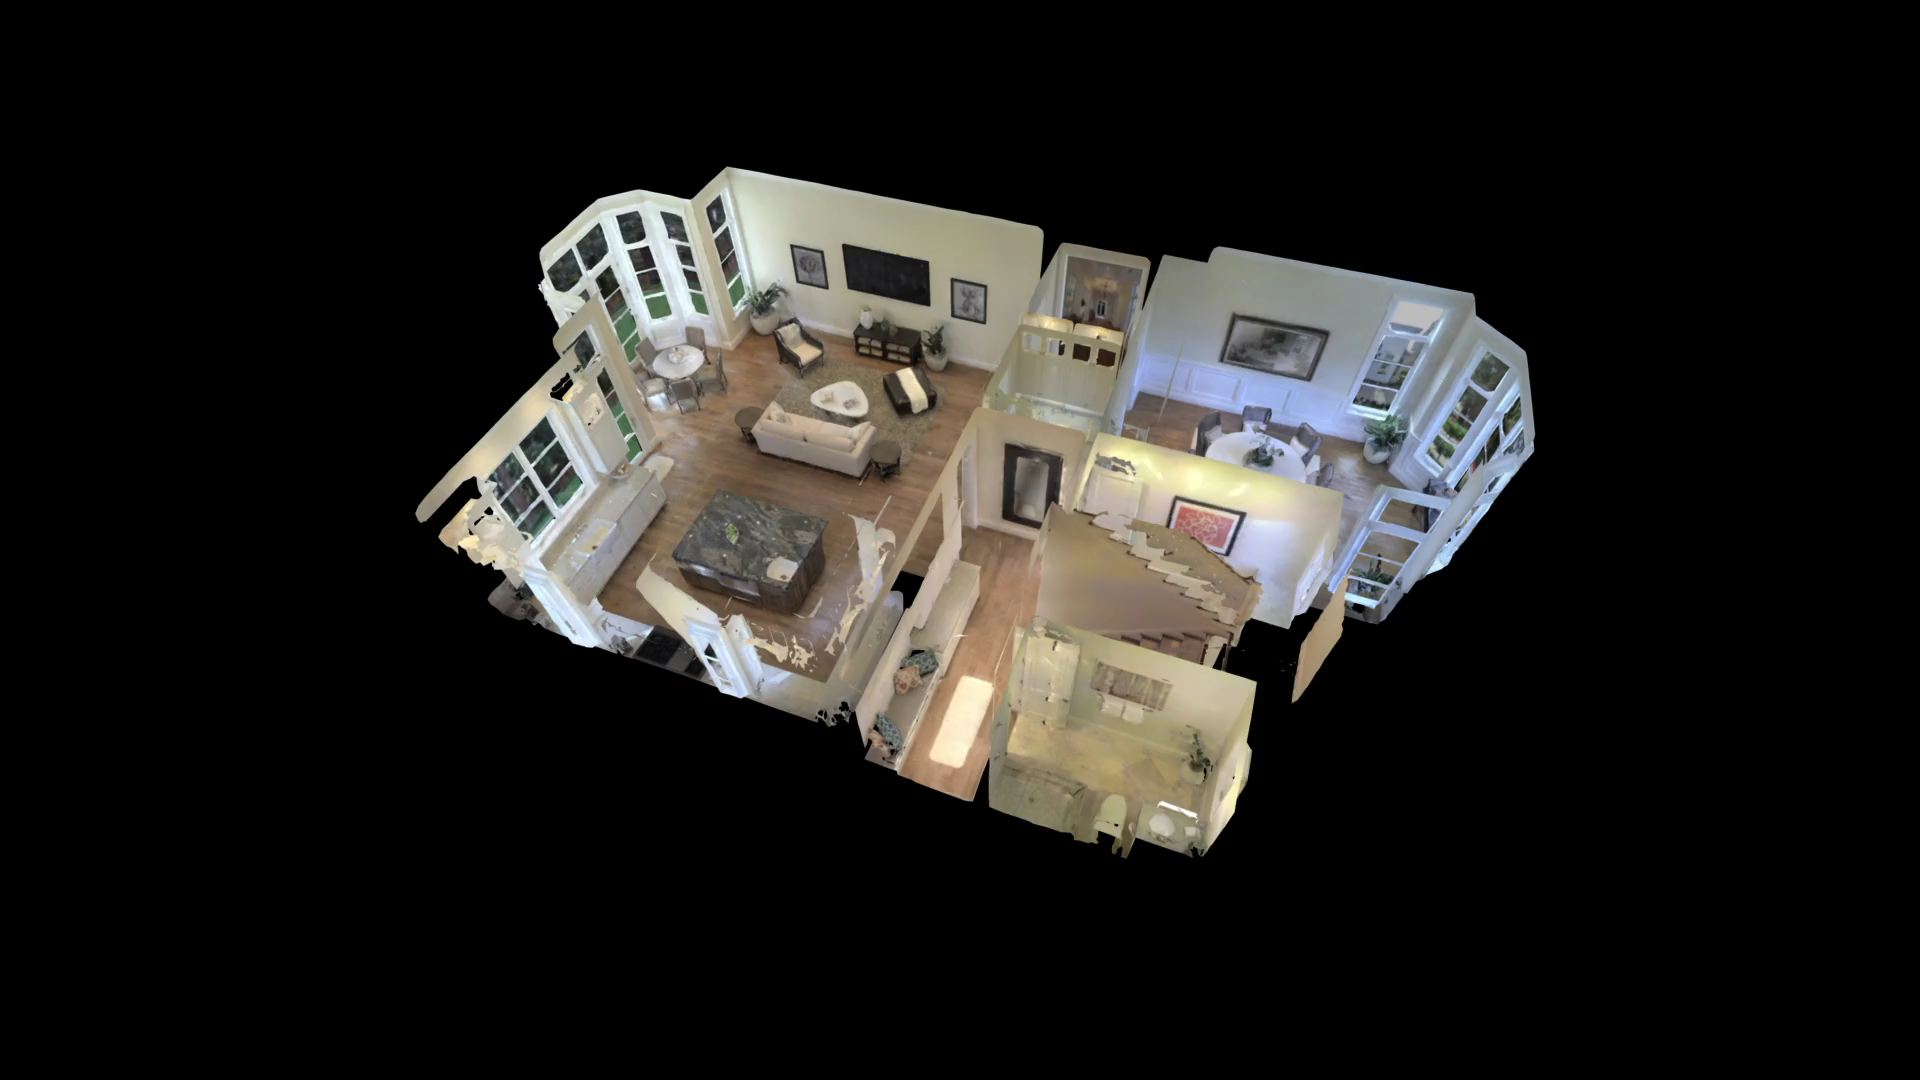 A fully rendered 3D interior captured by the Pro2 3D camera. Image via Pinterest